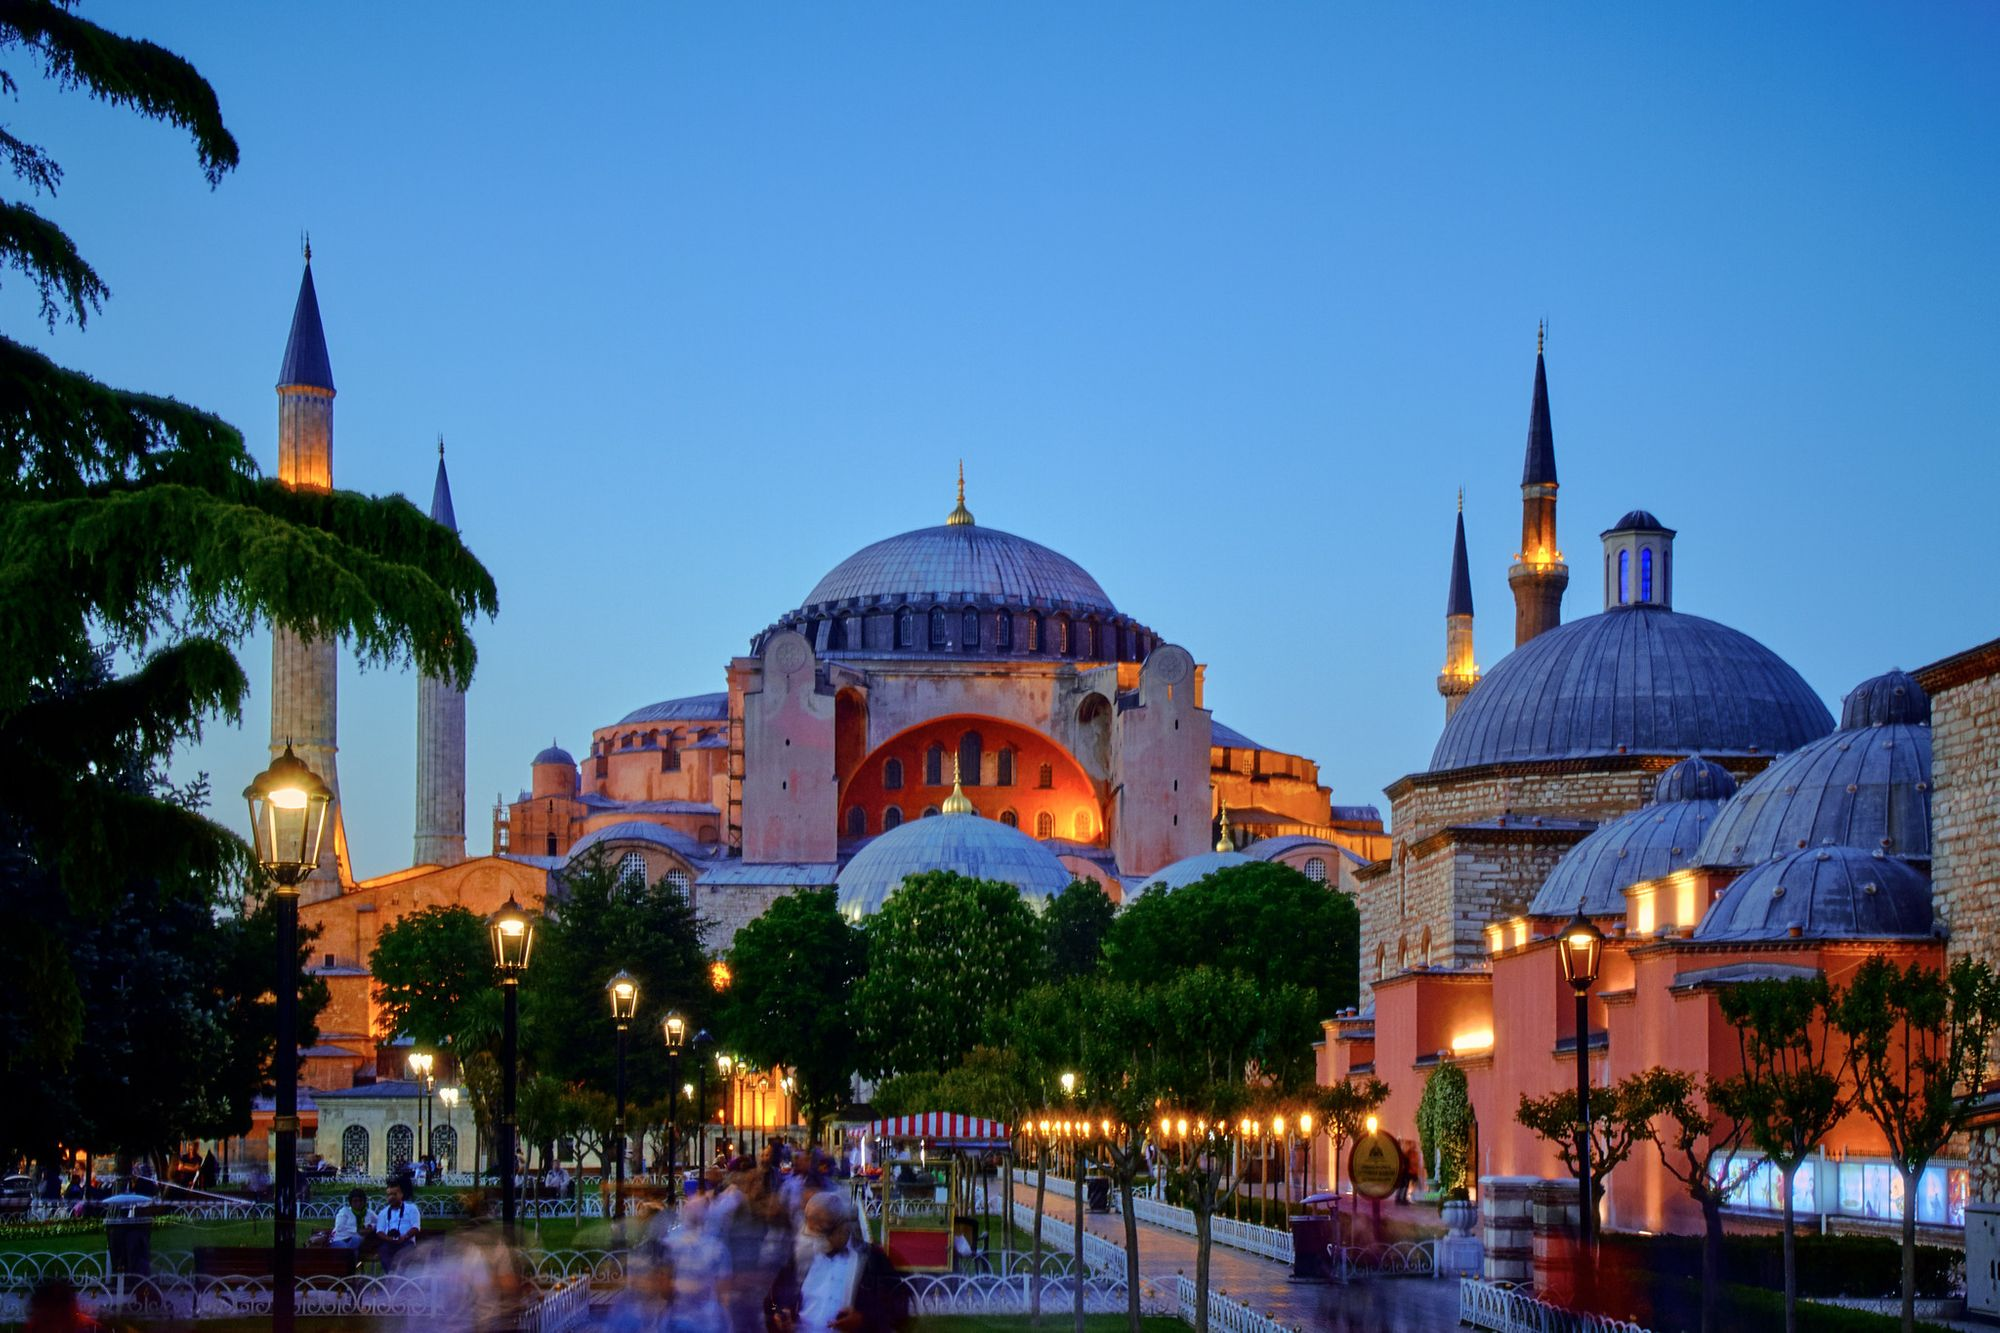 Hagia Sofia by Pedro Szekely, licensed under CC BY-SA 2.0.